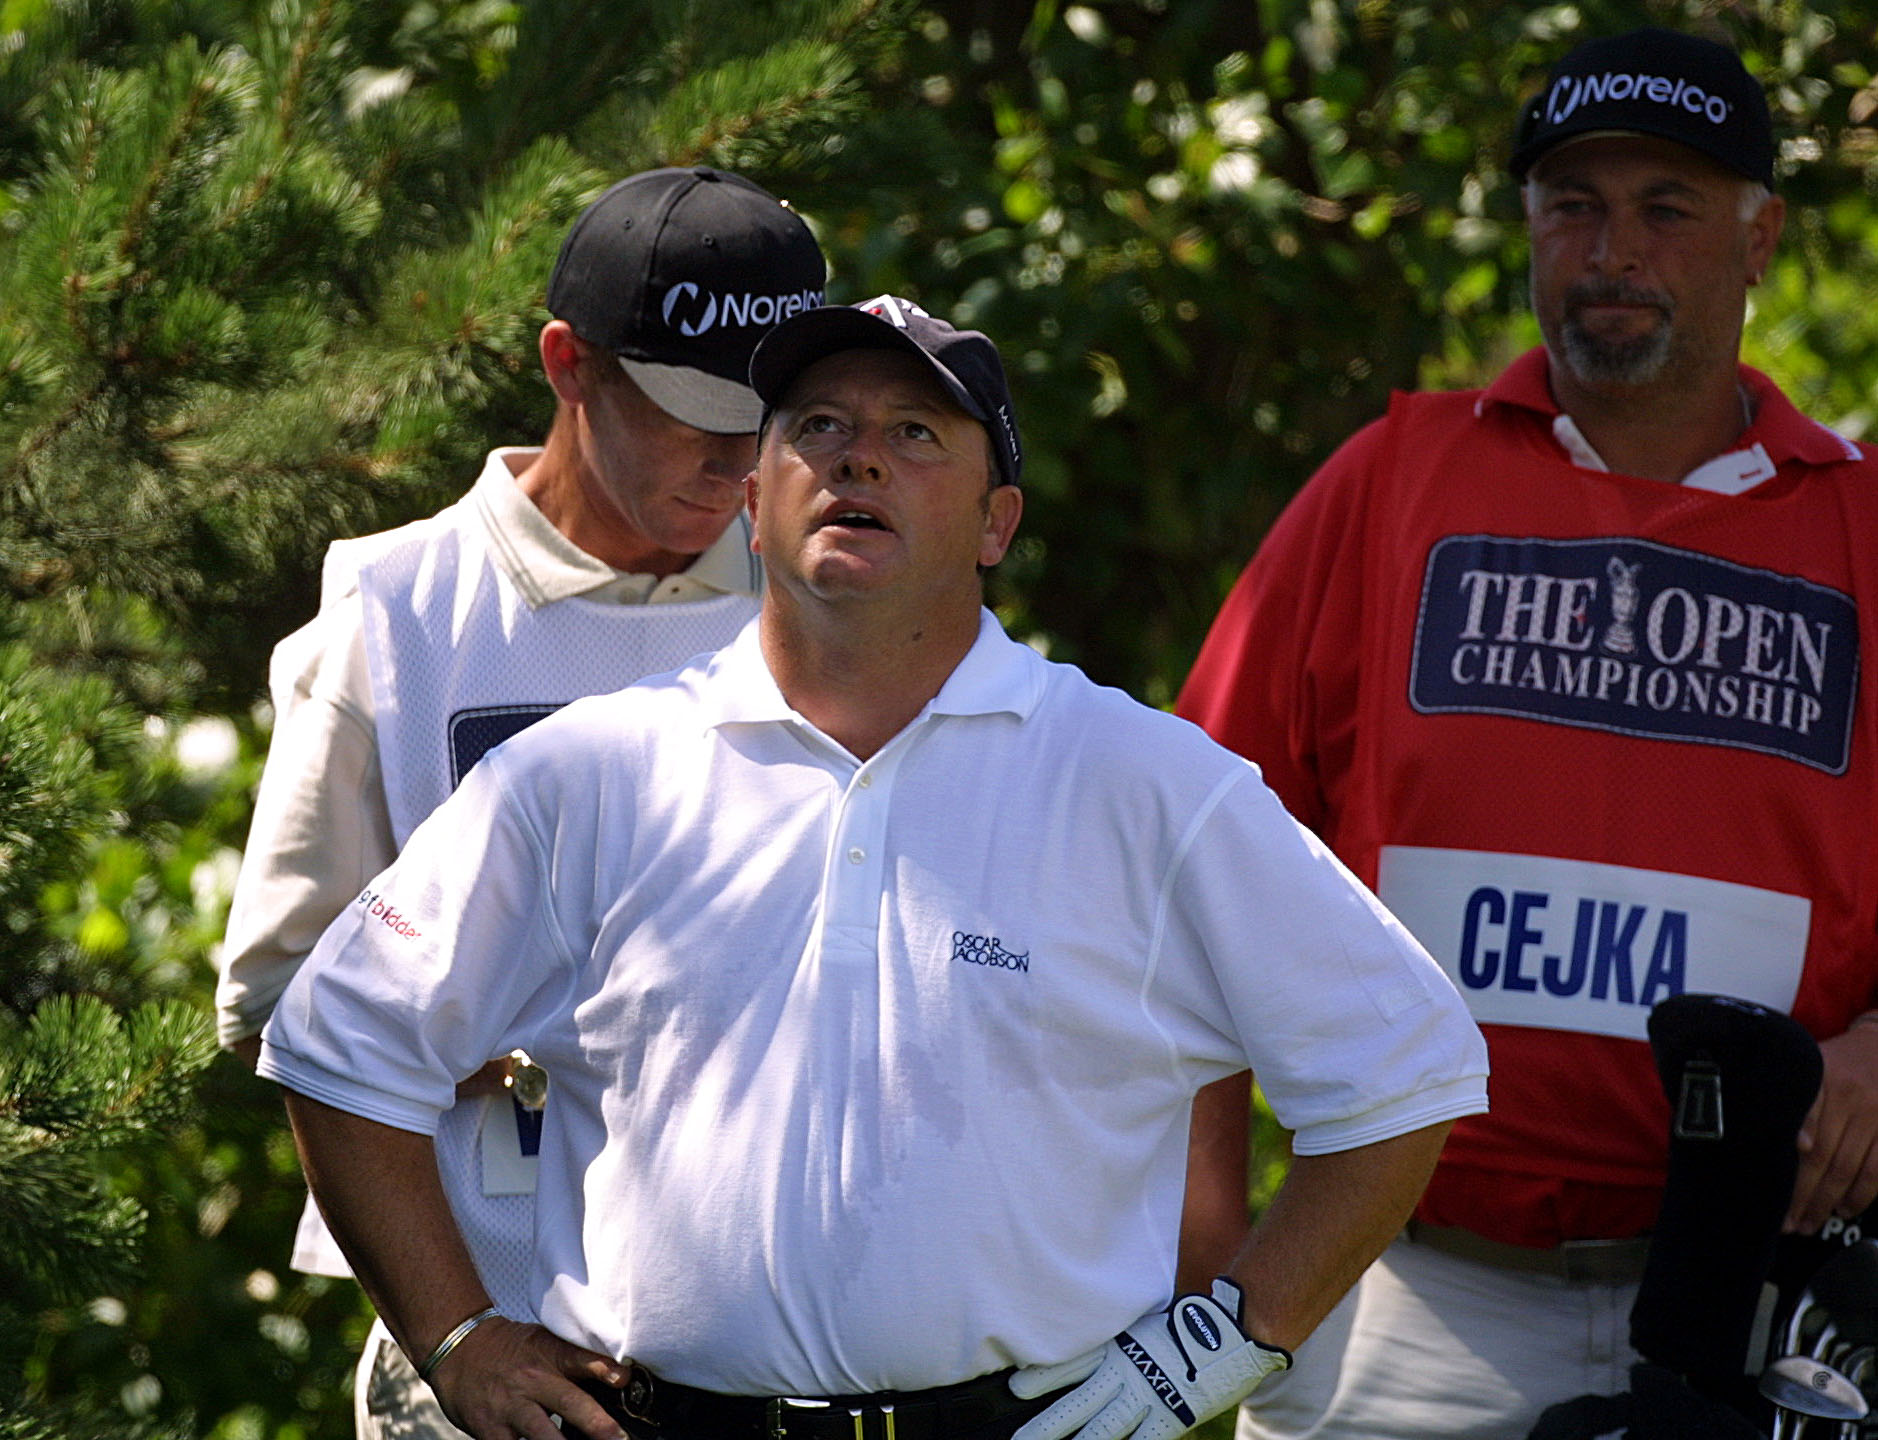 22 Jul 2001:  Ian Woosnam of Wales looks on is despair after being told by PGA tour official John  Paramor  that he has too many clubs in his bag and will be given a two shot penalty on the second tee during the fourth round of the 2001 Open Championshipa